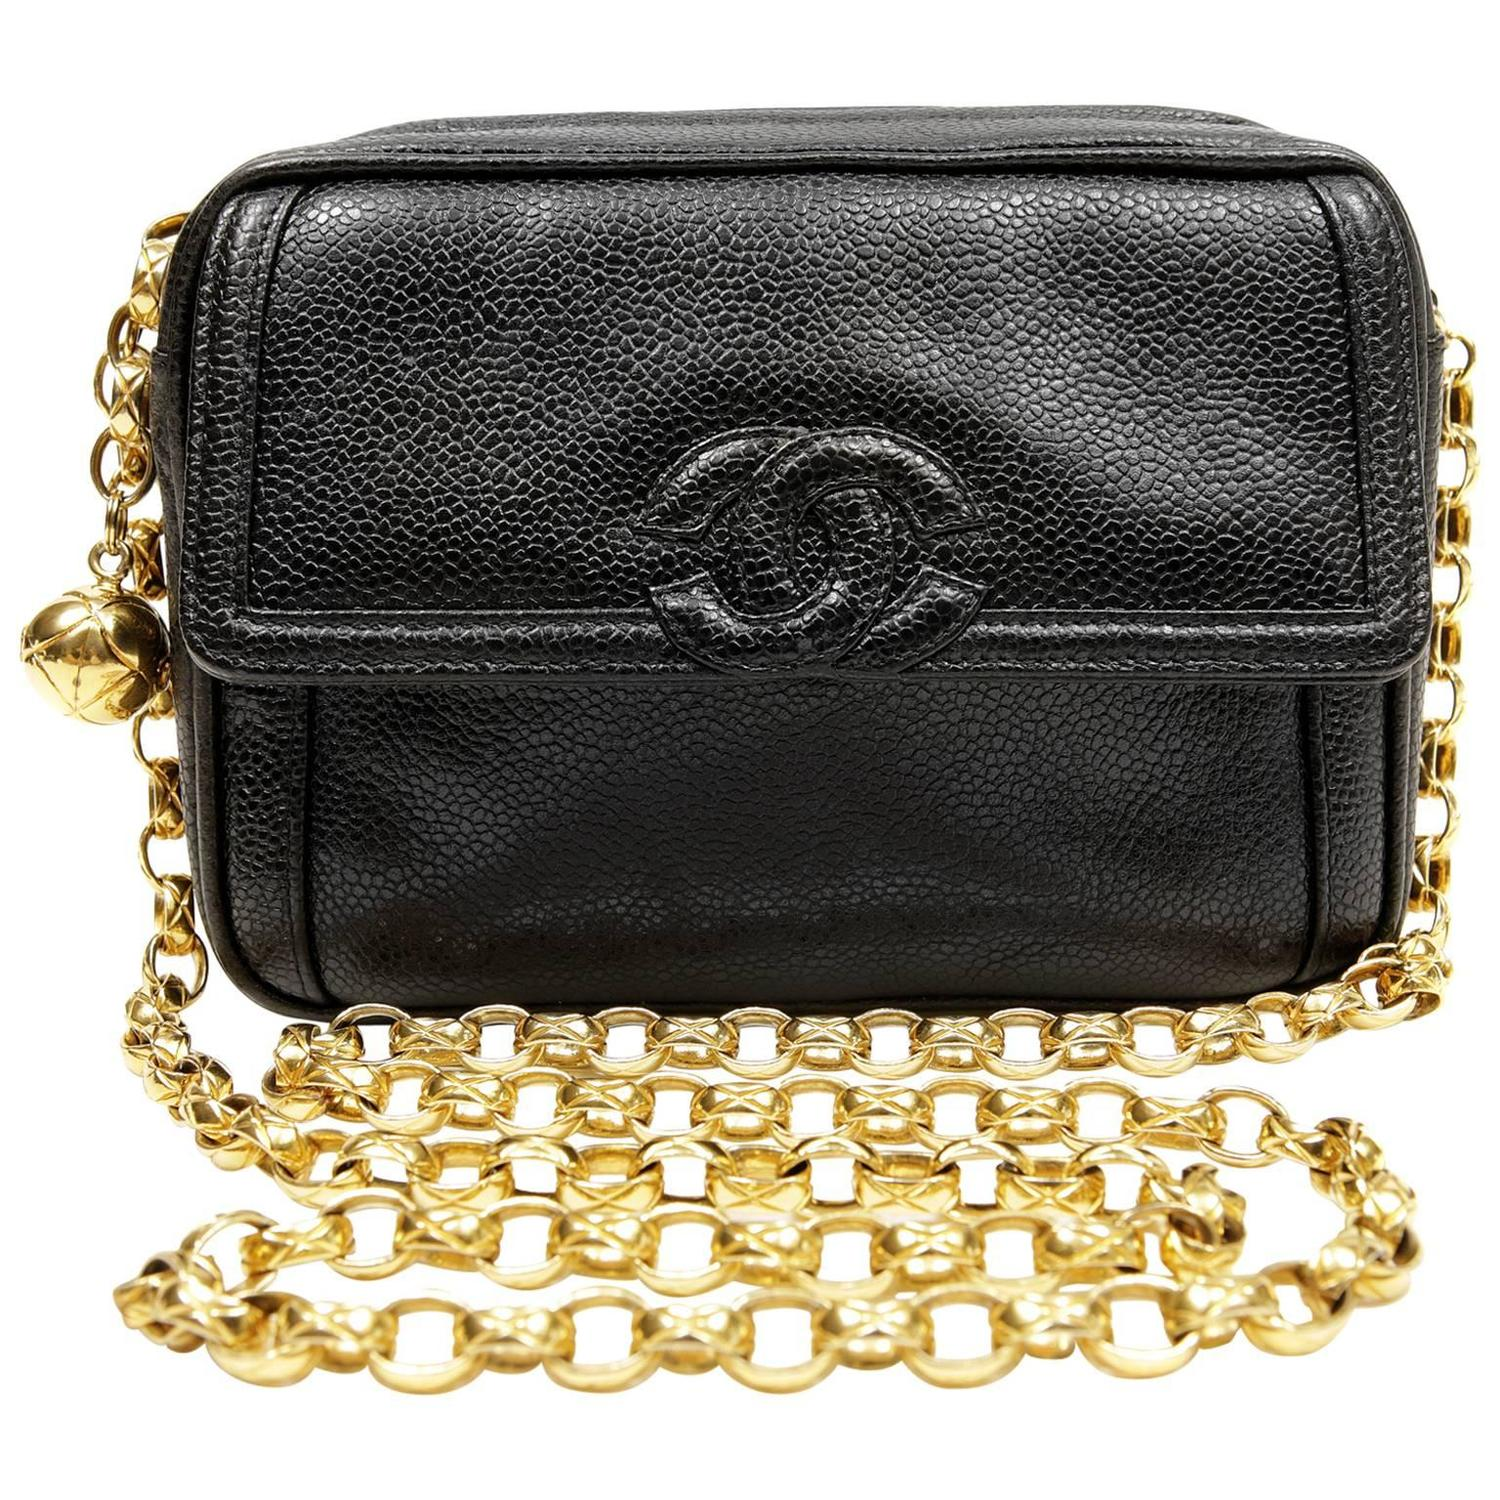 4447abce1db6 Chanel Black Caviar Camera Bag | Stanford Center for Opportunity ...